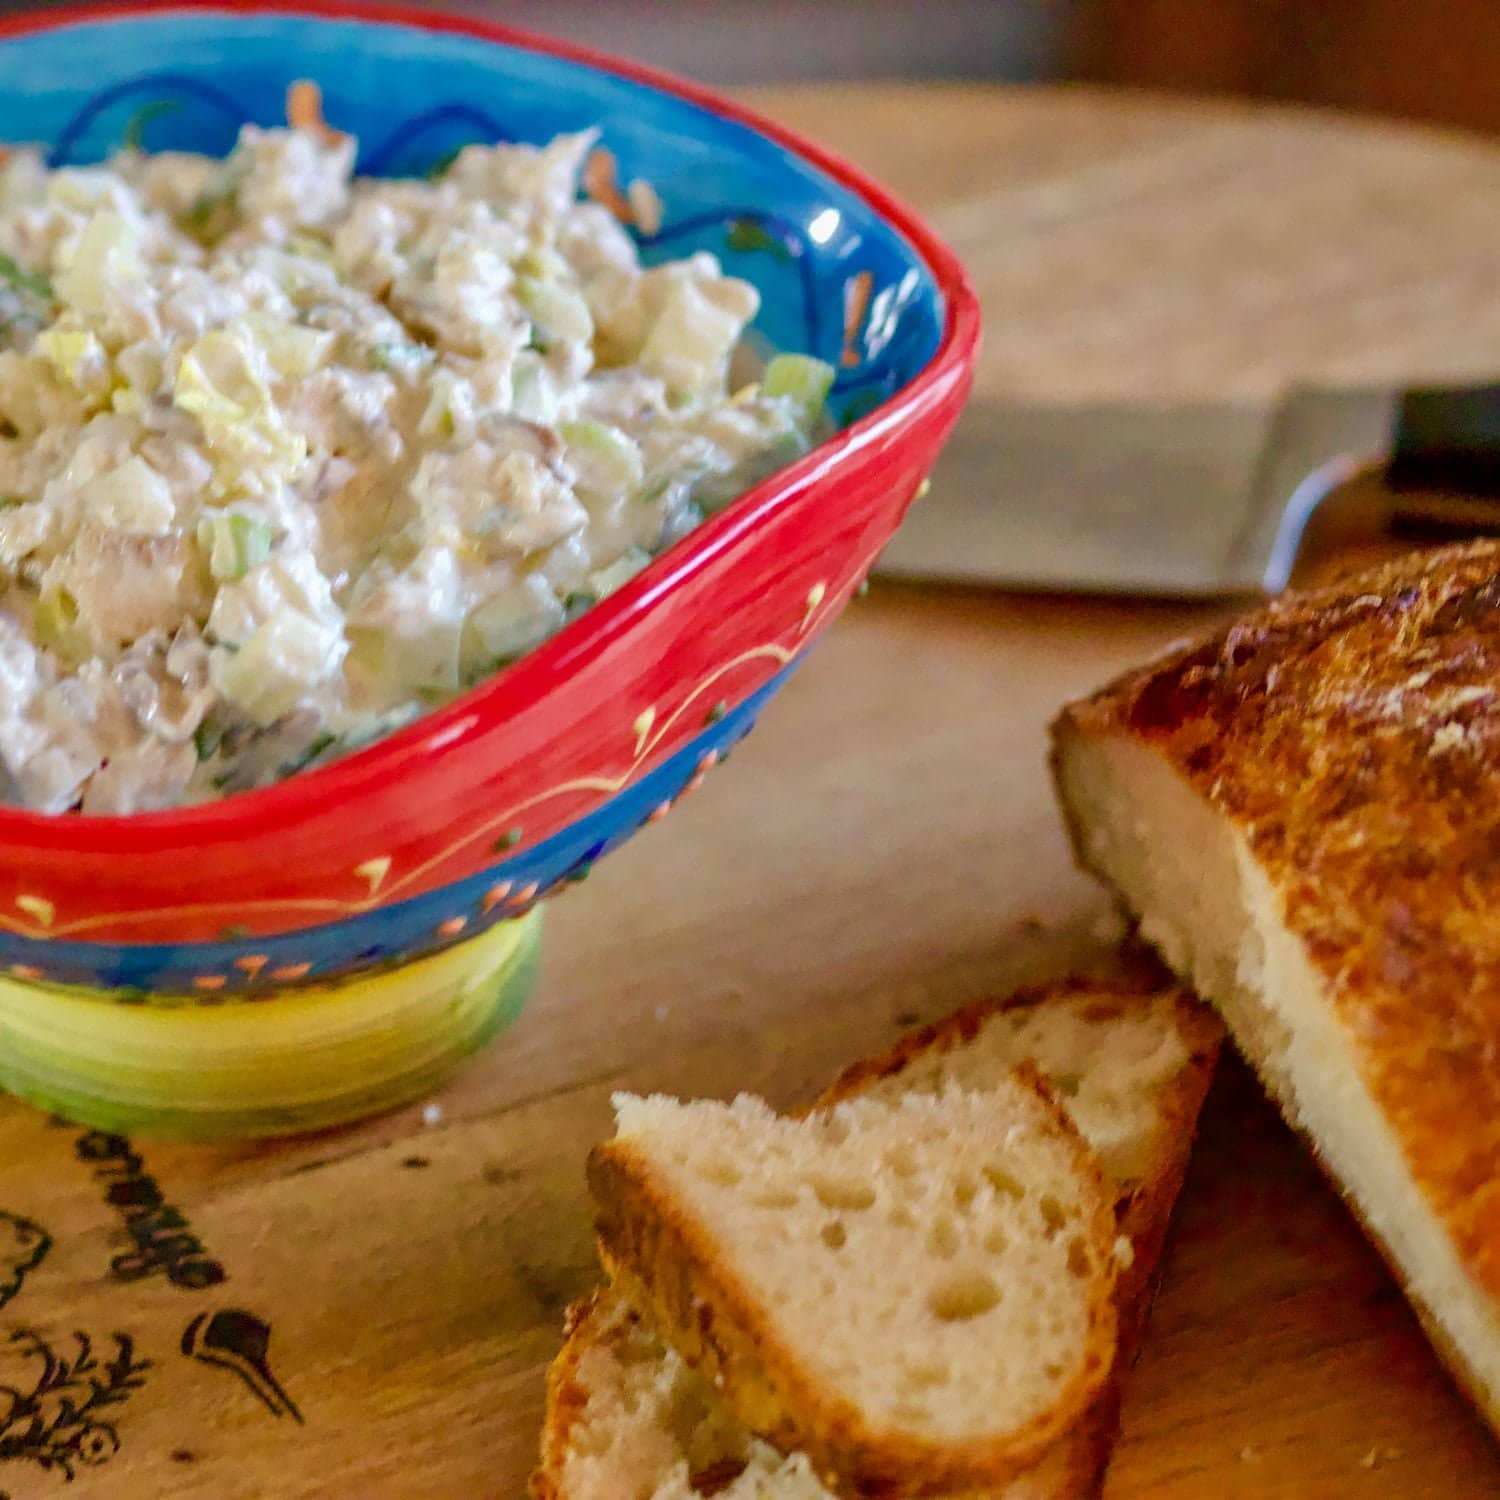 Smoked trout dip with mayo in a colorful bowl next to crusty bread